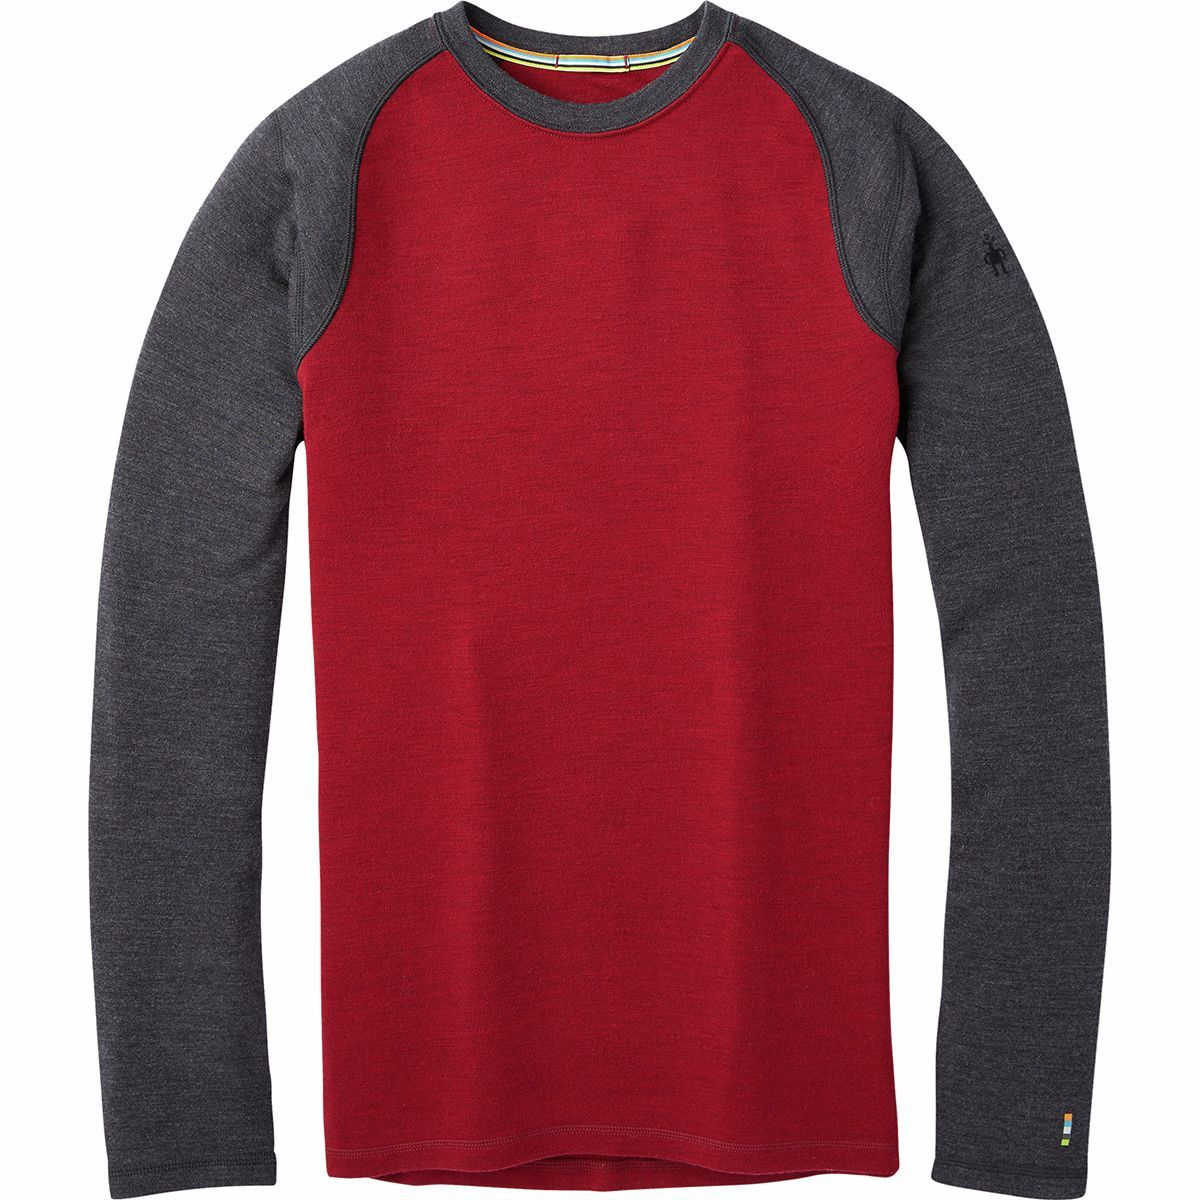 Merino 250 Baselayer Crew - Men's #manoutfit